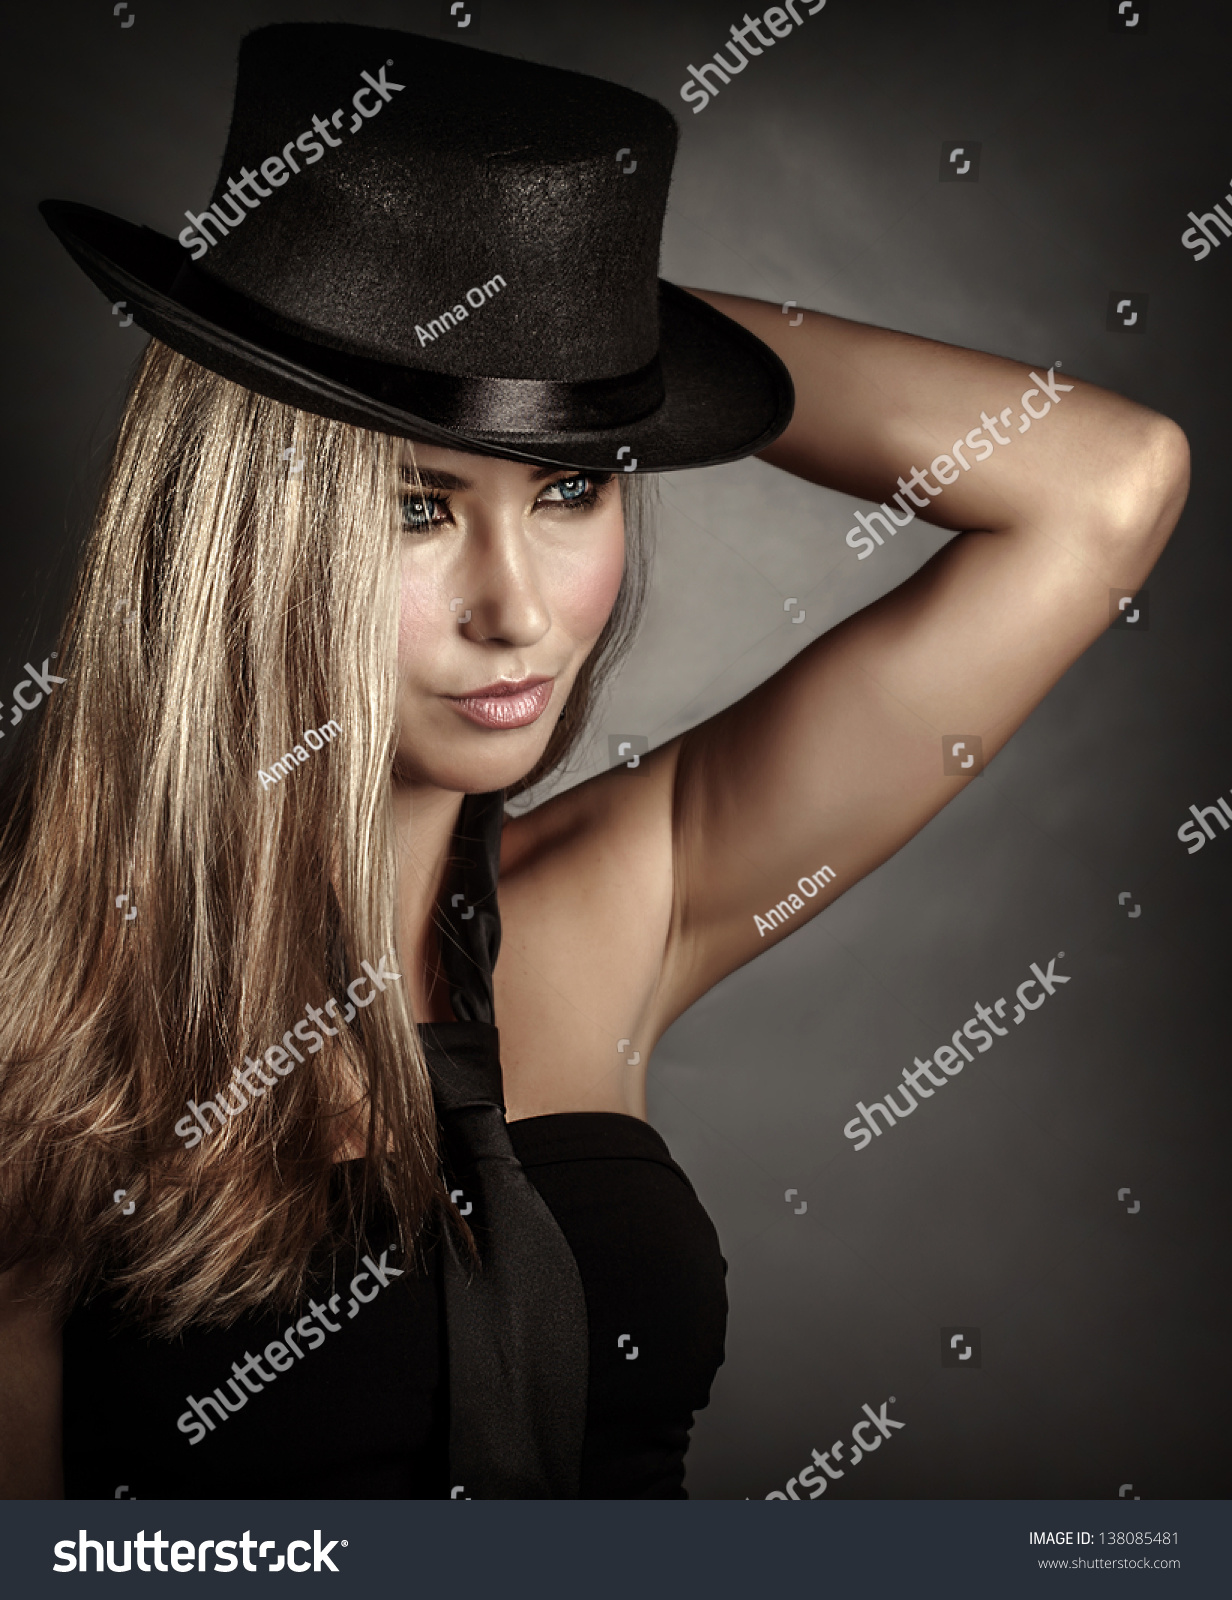 Closeup portrait of beautiful woman wearing stylish accessories isolated on  gray background f319f33eb86d